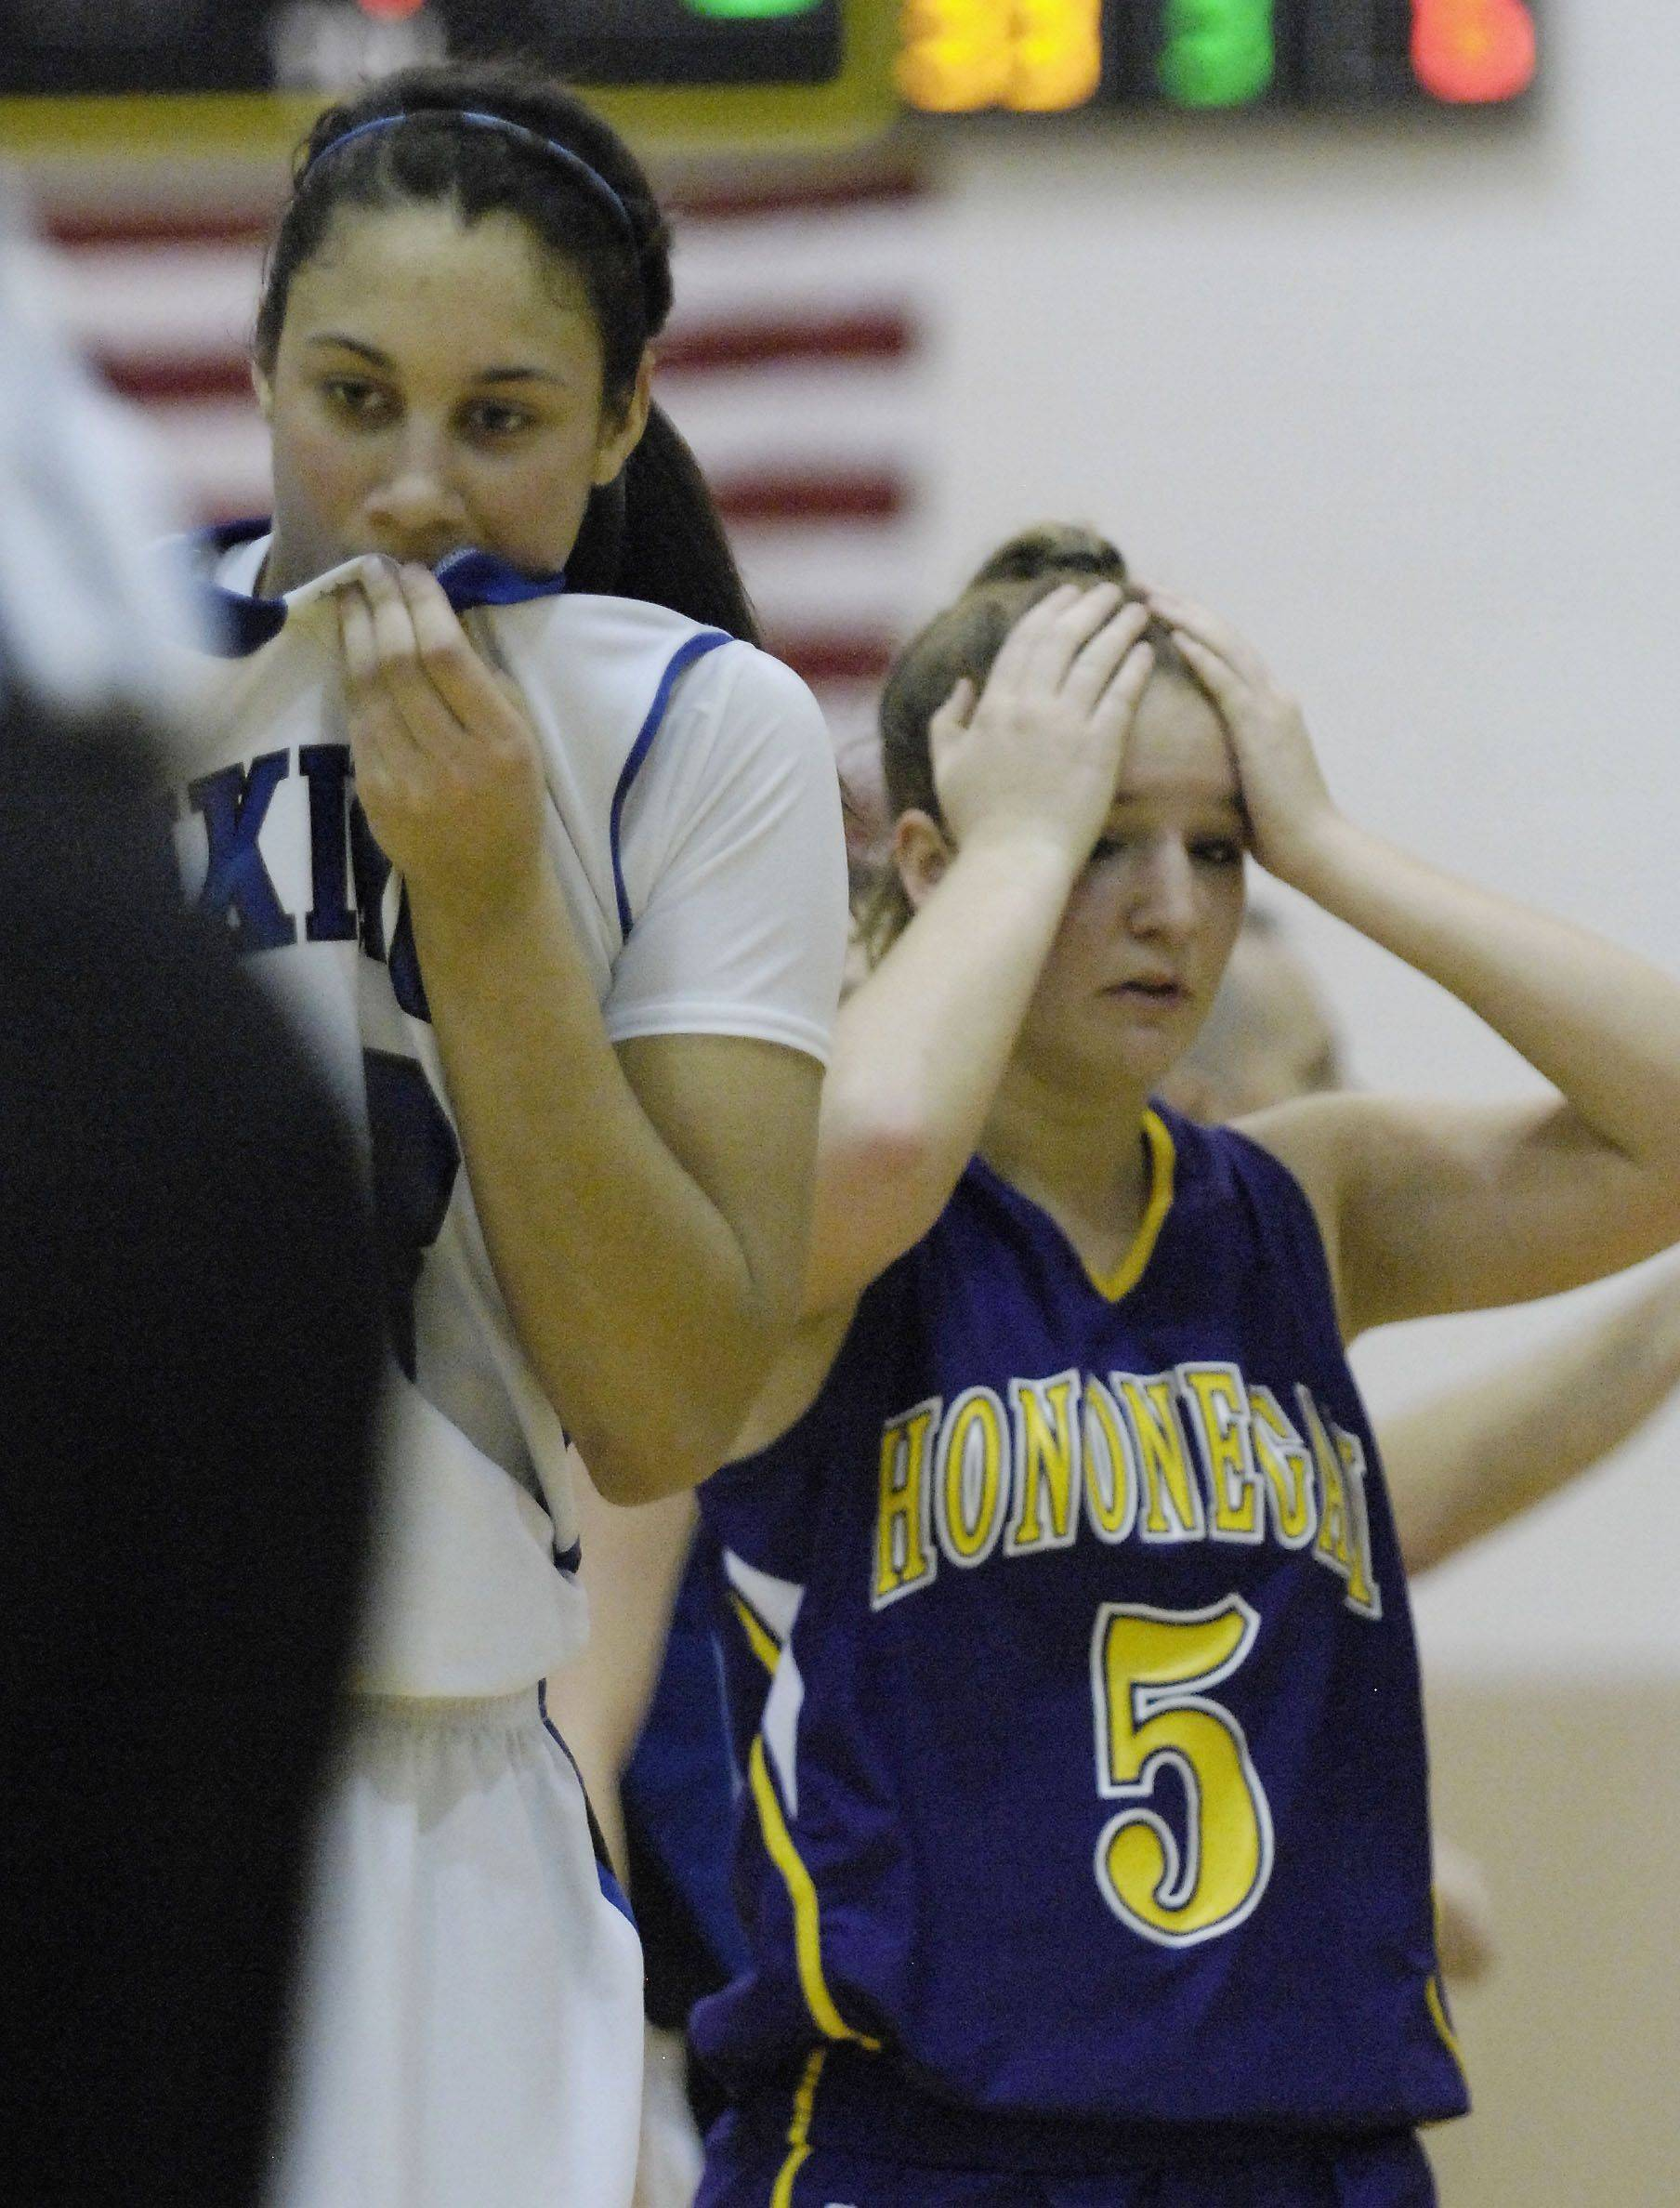 Geneva's Ashley Santos and Hononegah's Lindsay Carroll react after Carroll fouled Santos with her team down by 10 and 33 seconds on the clock Tuesday in the sectional semi final game in Algonquin.